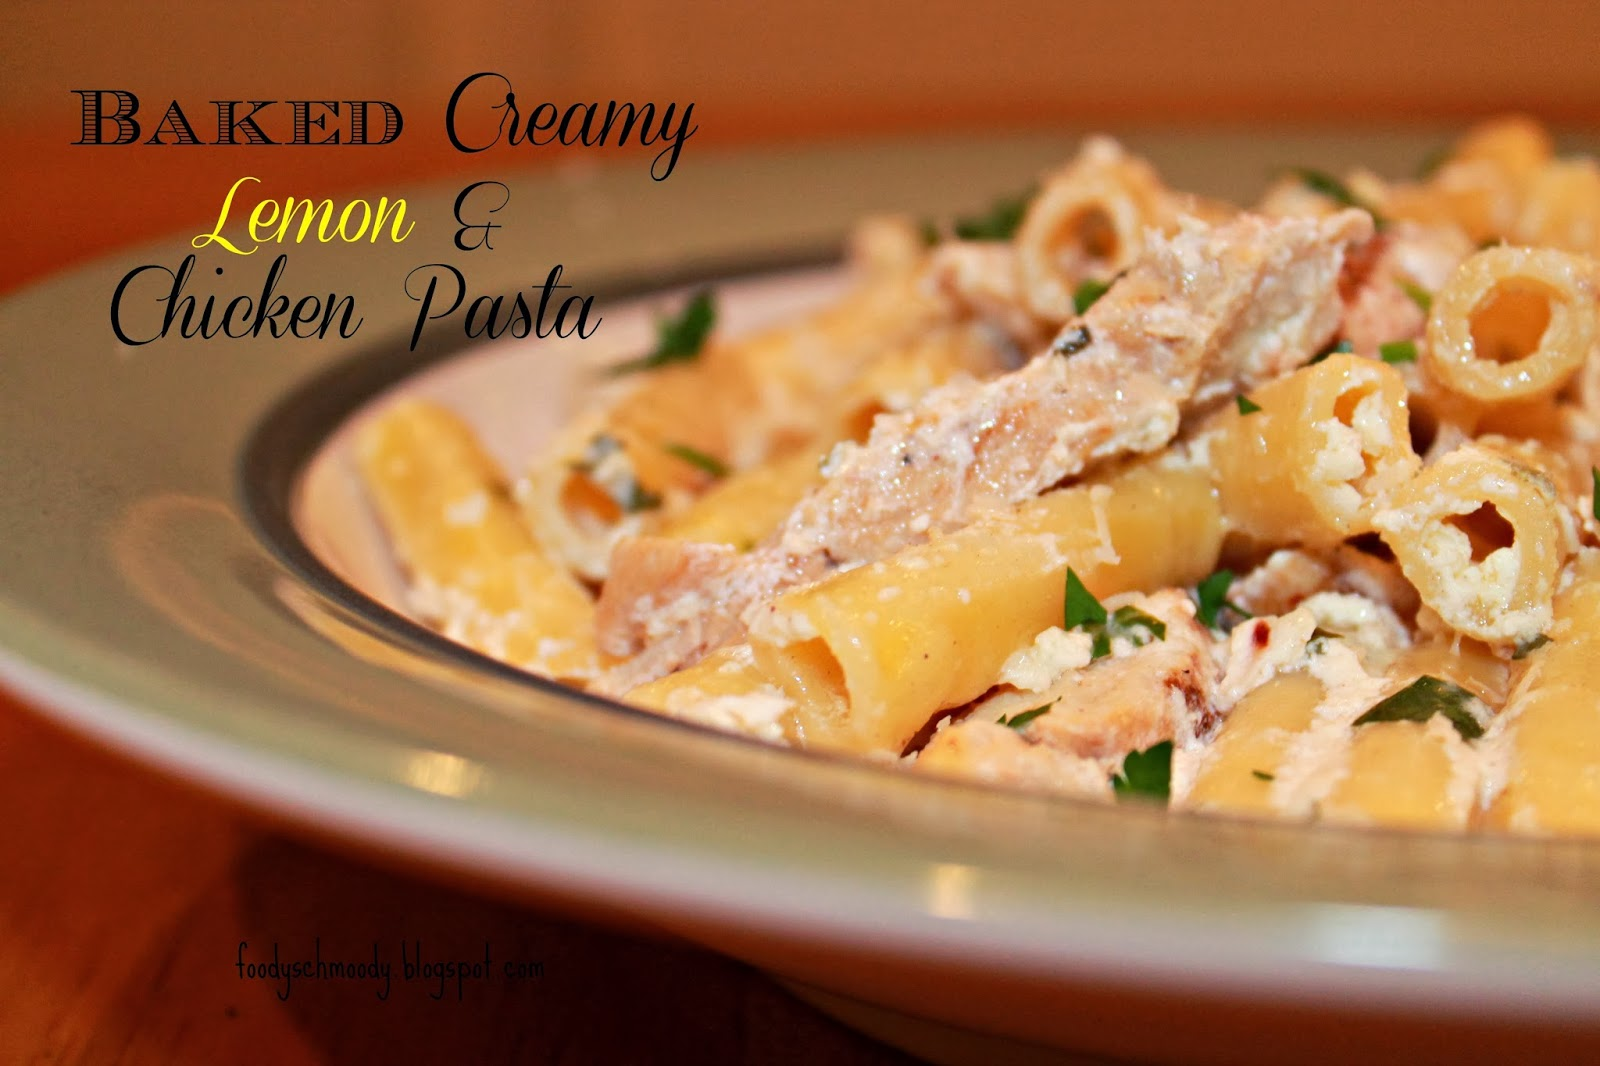 Baked Creamy Lemon & Chicken Pasta - Foody Schmoody Blog | Foody ...